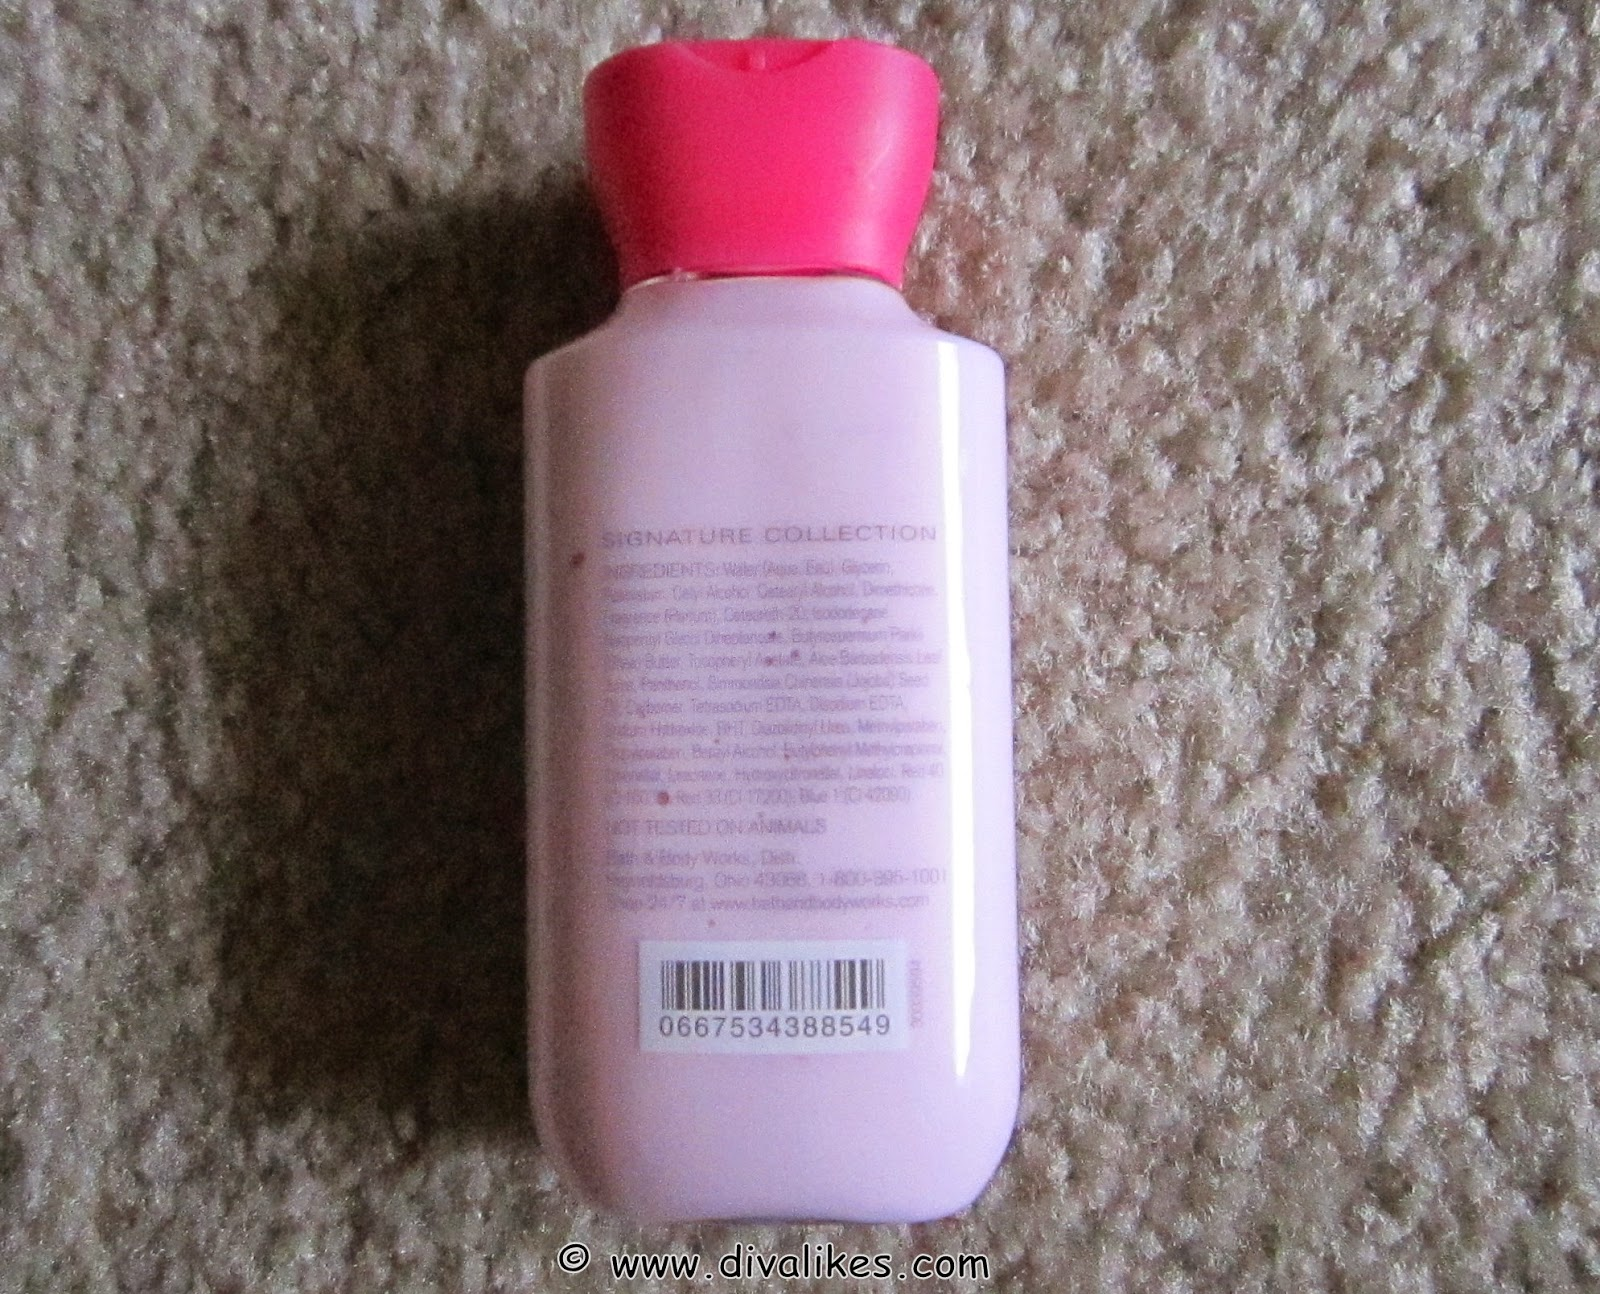 Bath Amp Body Works Mad About You Body Lotion Review Diva